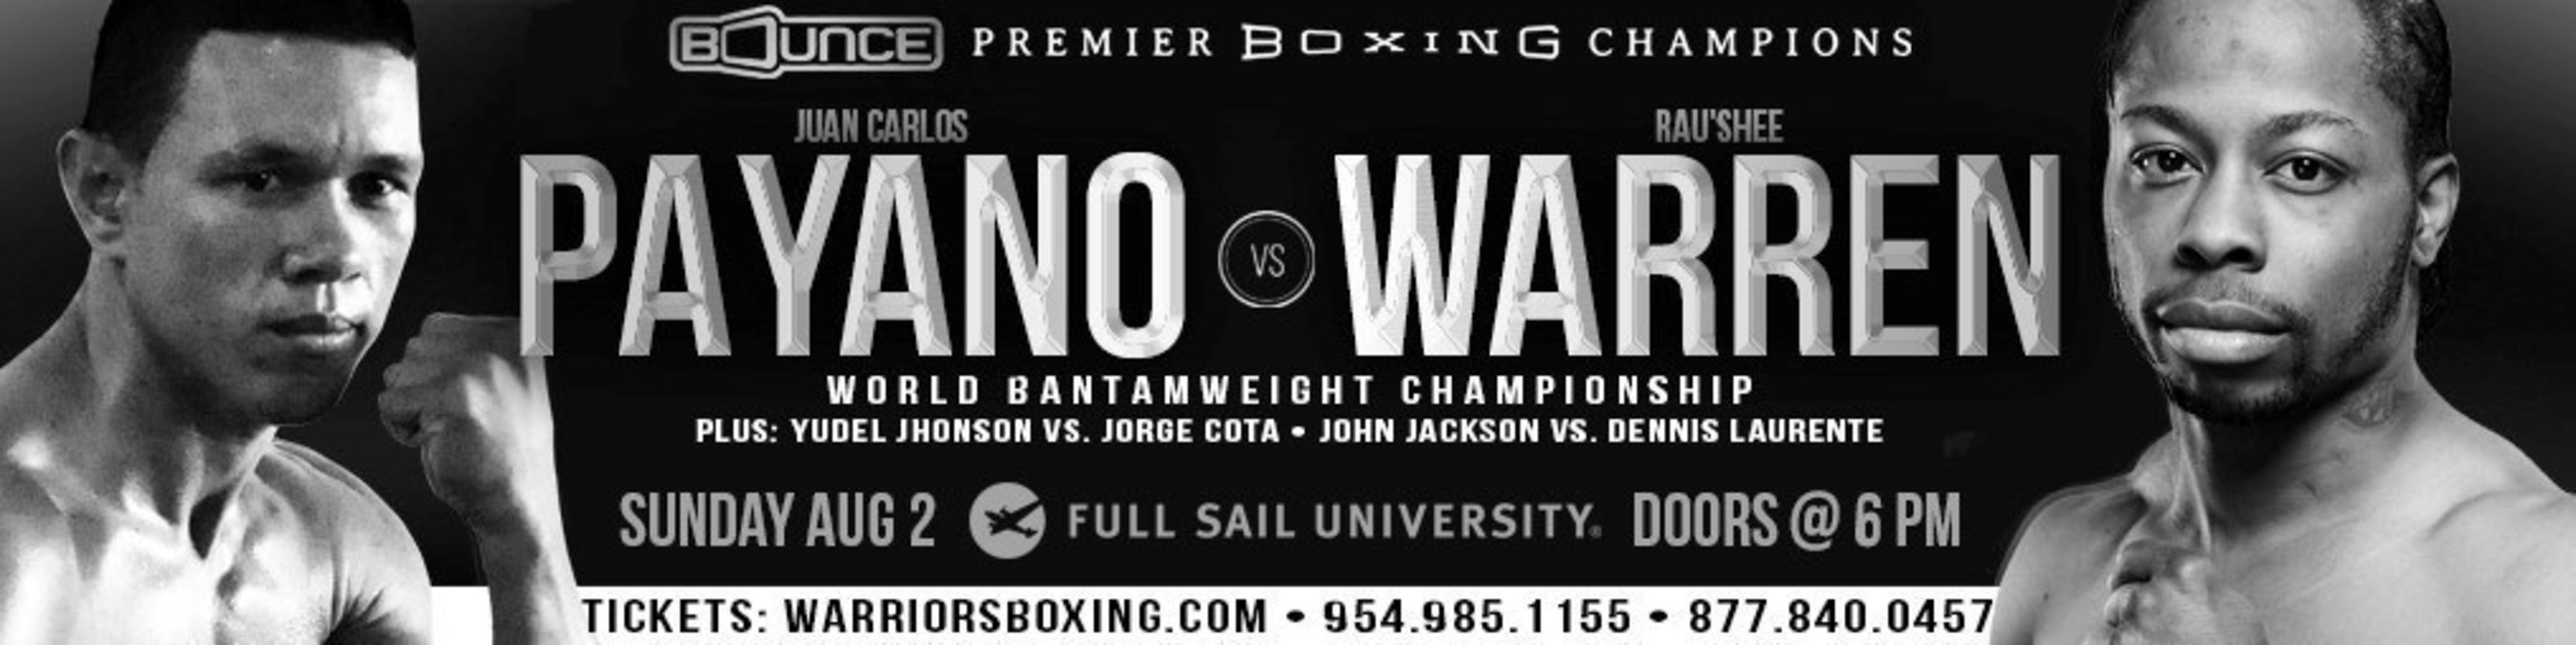 Premier Boxing Champions comes to Bounce TV this Sunday, August 2 at 9:00 p.m. (ET), with the debut of the new monthly series PBC - The Next Round, which will showcase the sport's future stars and potential champions. The network will also stream the telecast live on BounceTV.com, which will also have local channel location for the network.